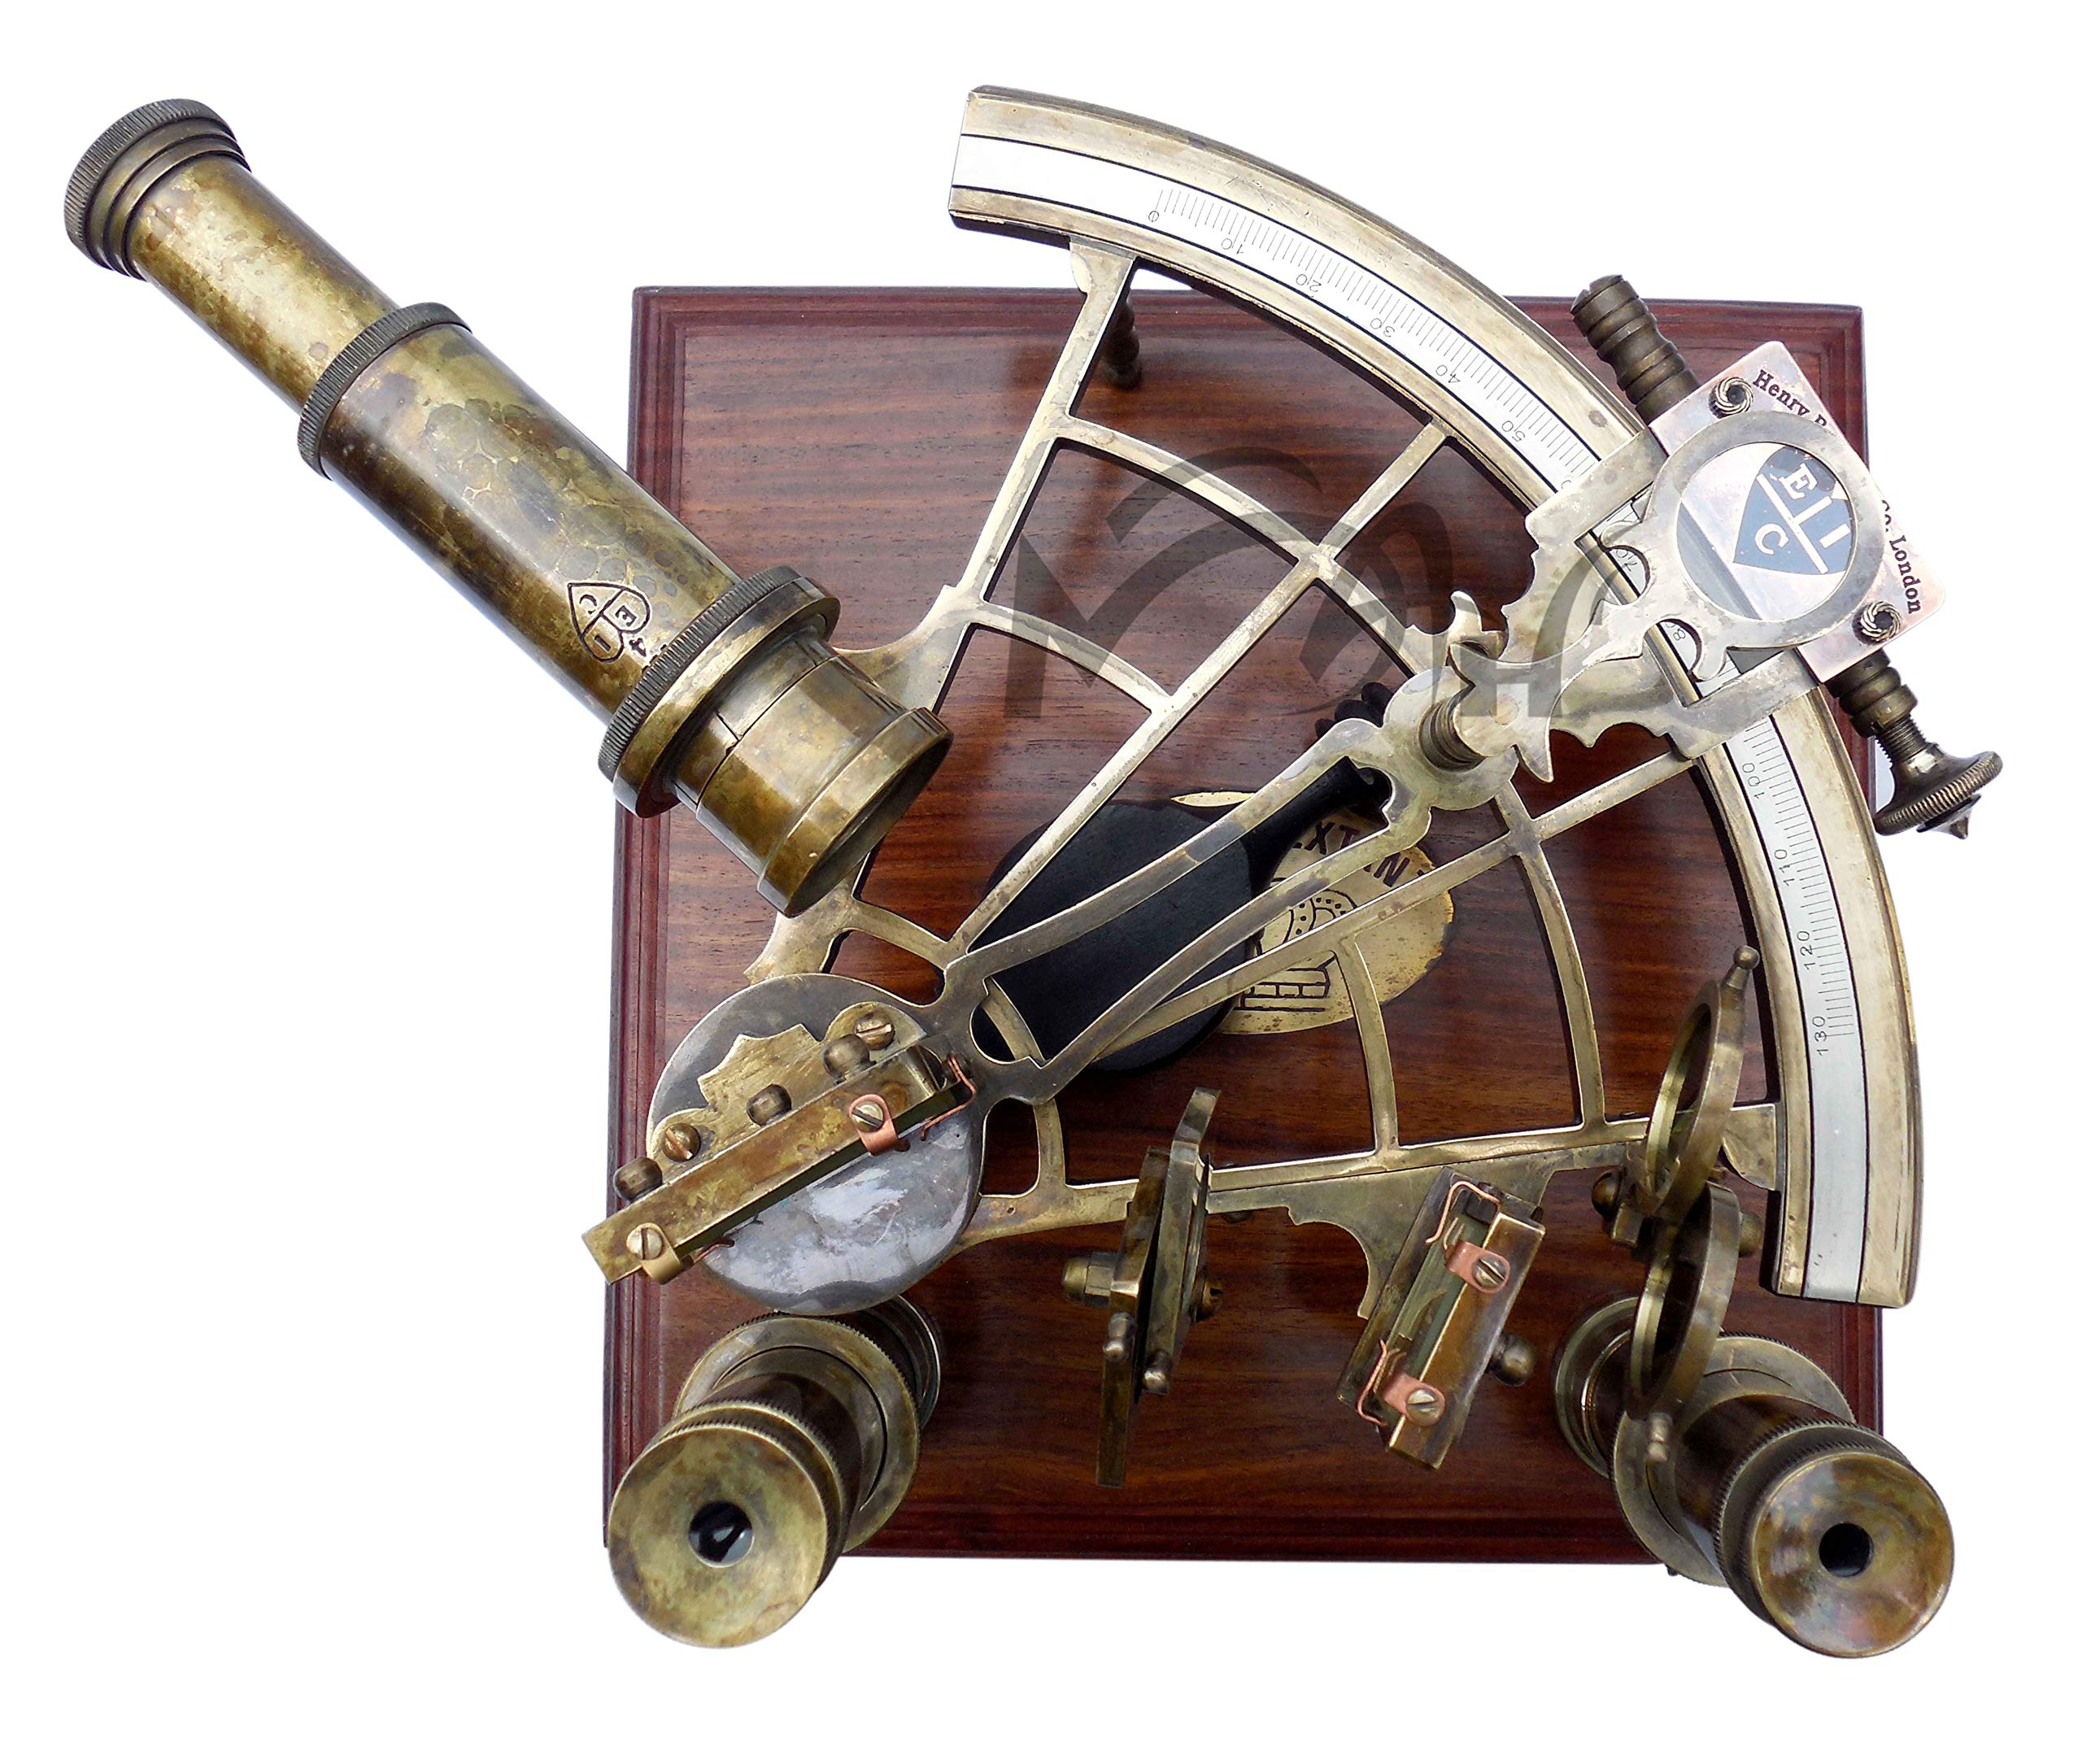 MAH 8'' Maritime Antiques Marine Captain Sextant with Wooden Box. C-3083 by MAH